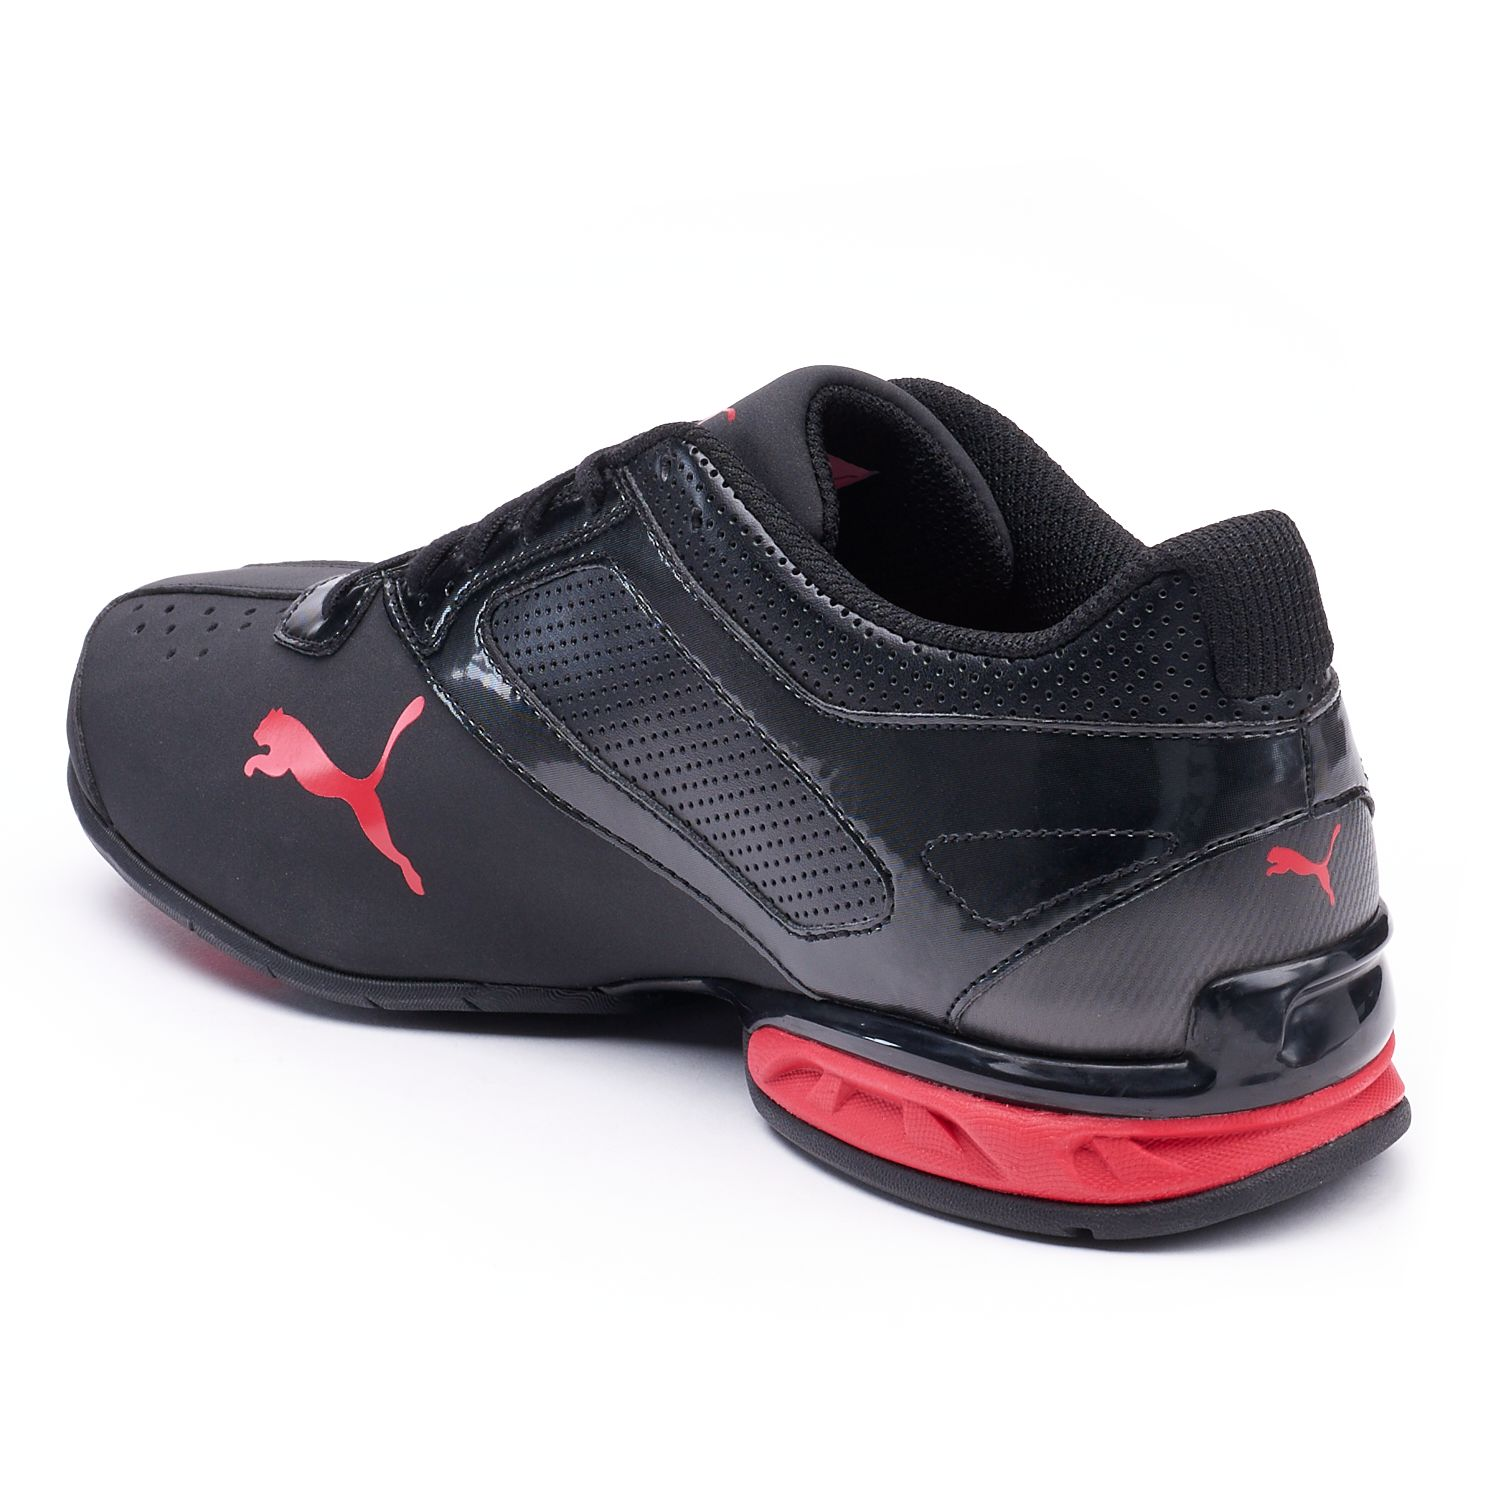 Men's Puma Shoes | Kohl's